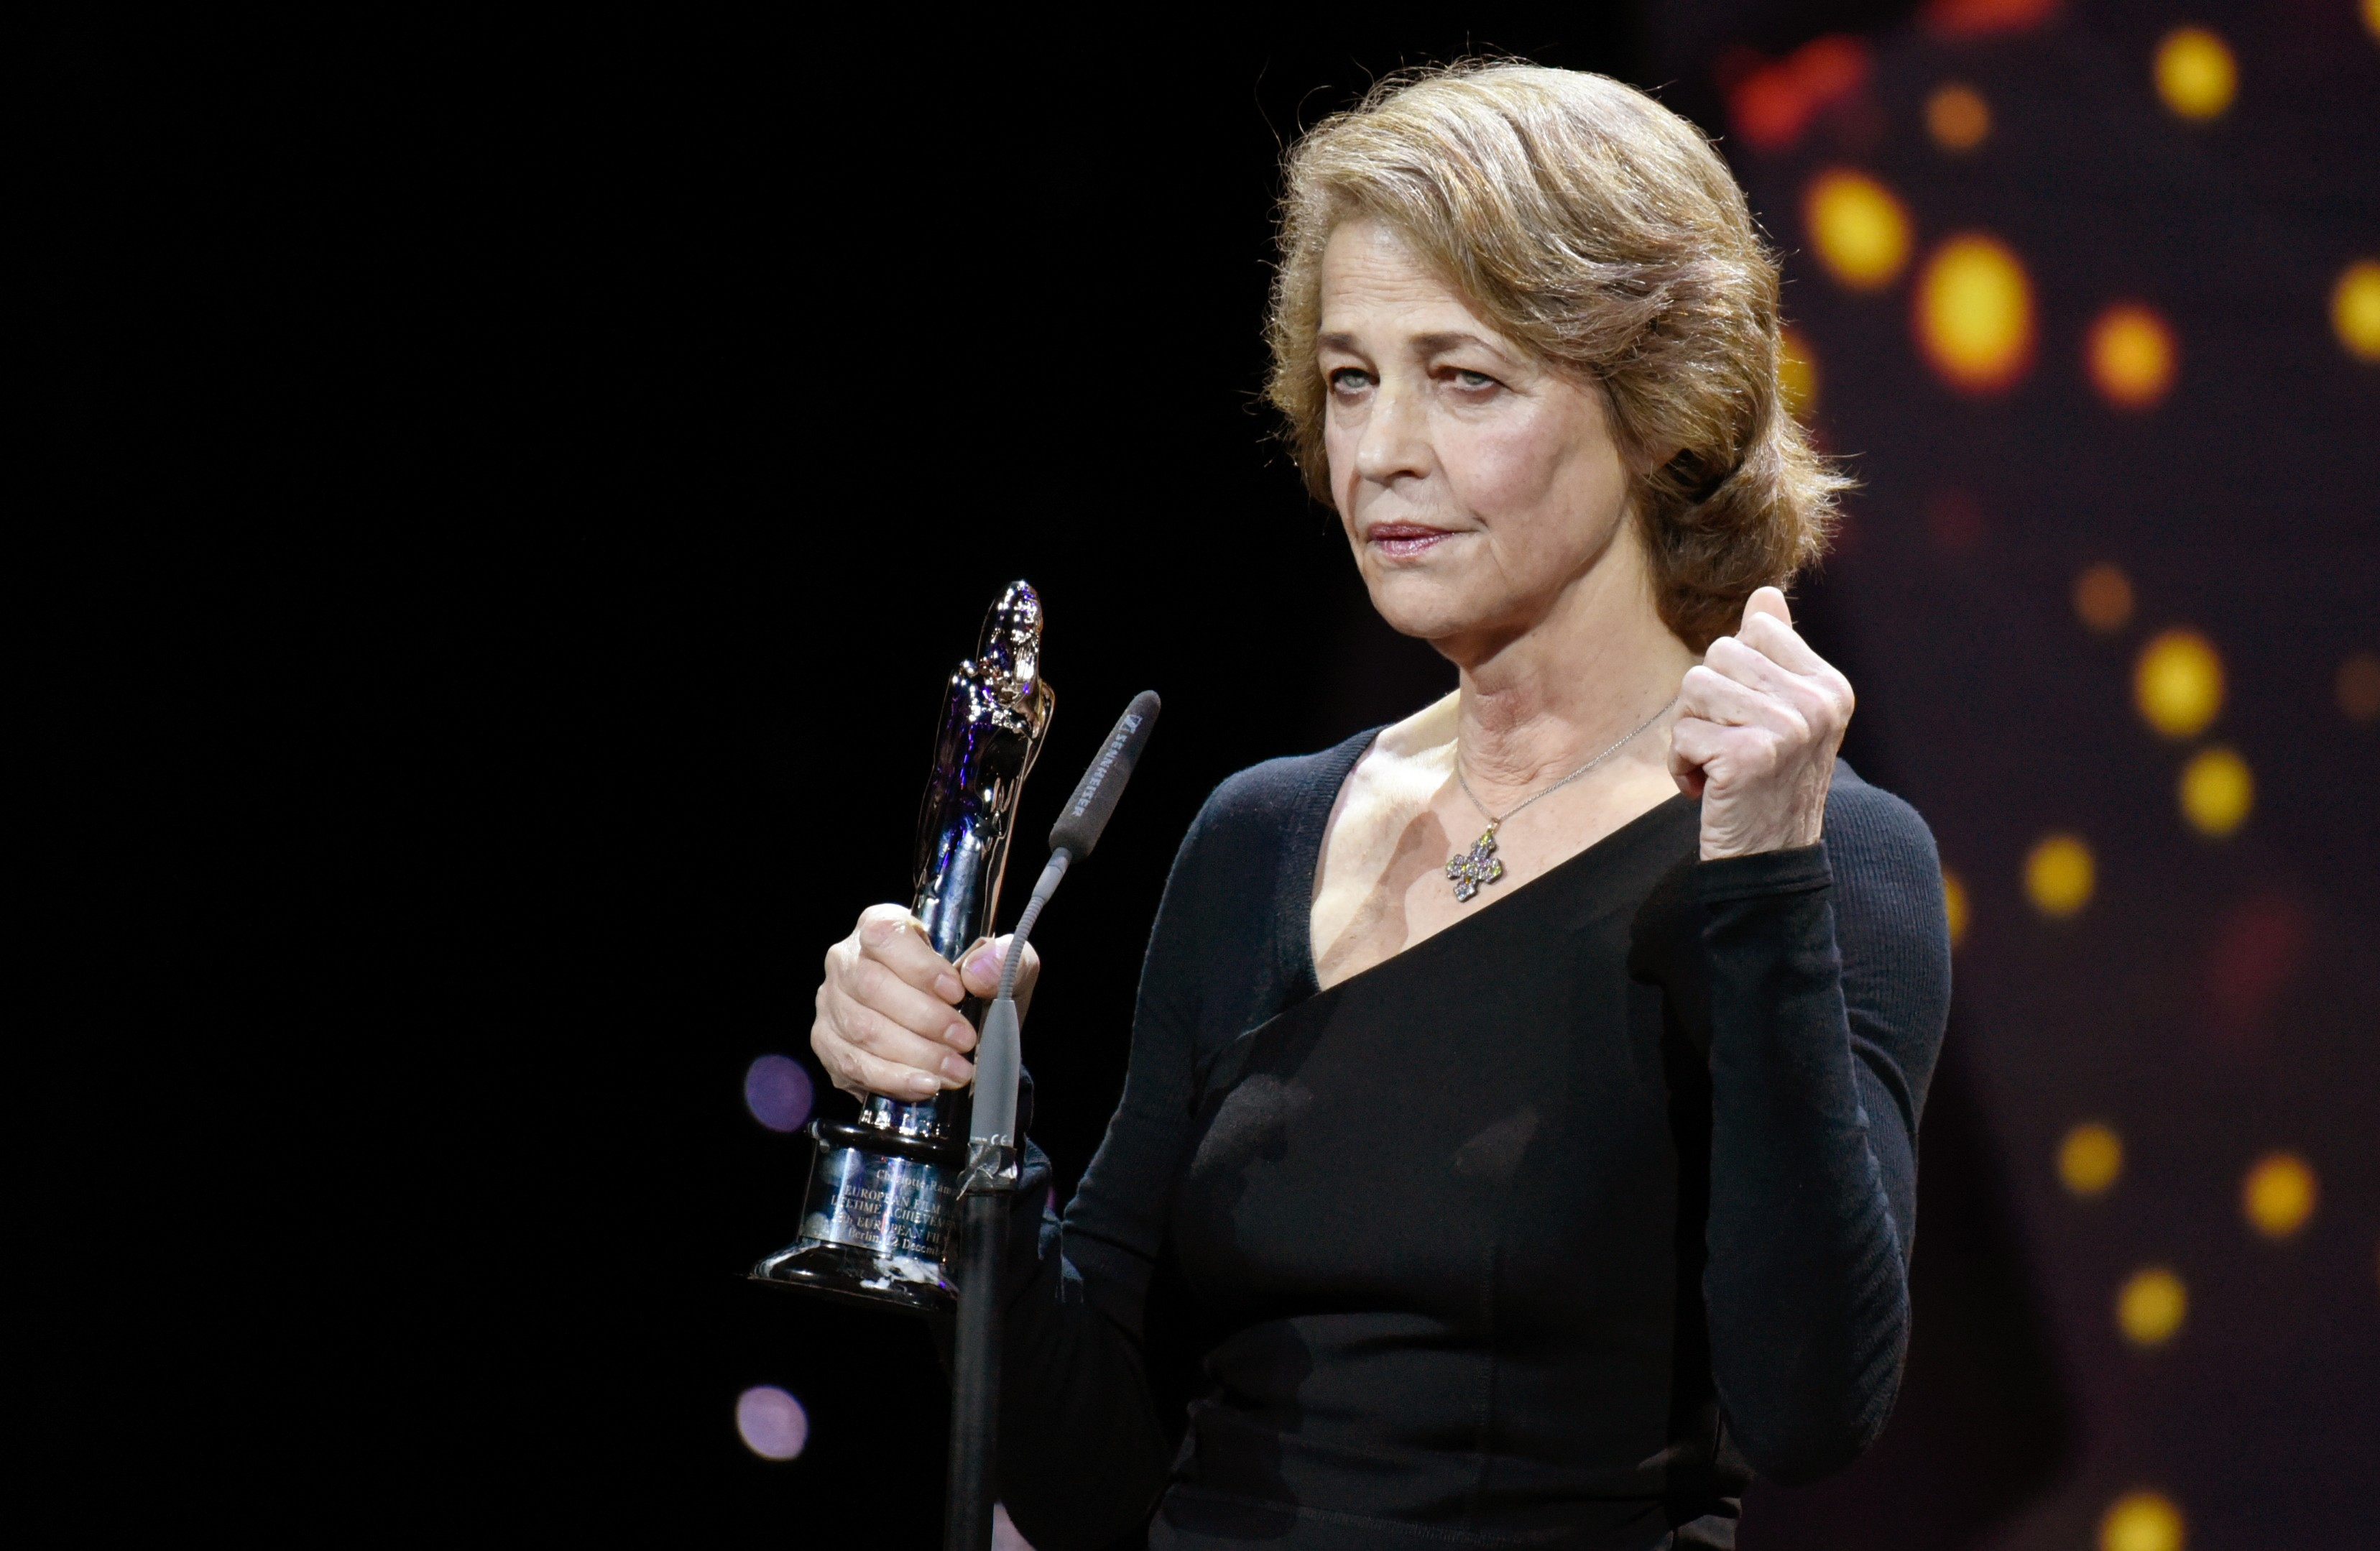 British actress Charlotte Rampling holds her Lifetime Achievement Award during the 28th European Film Award ceremony in Berlin on December 12, 2015.